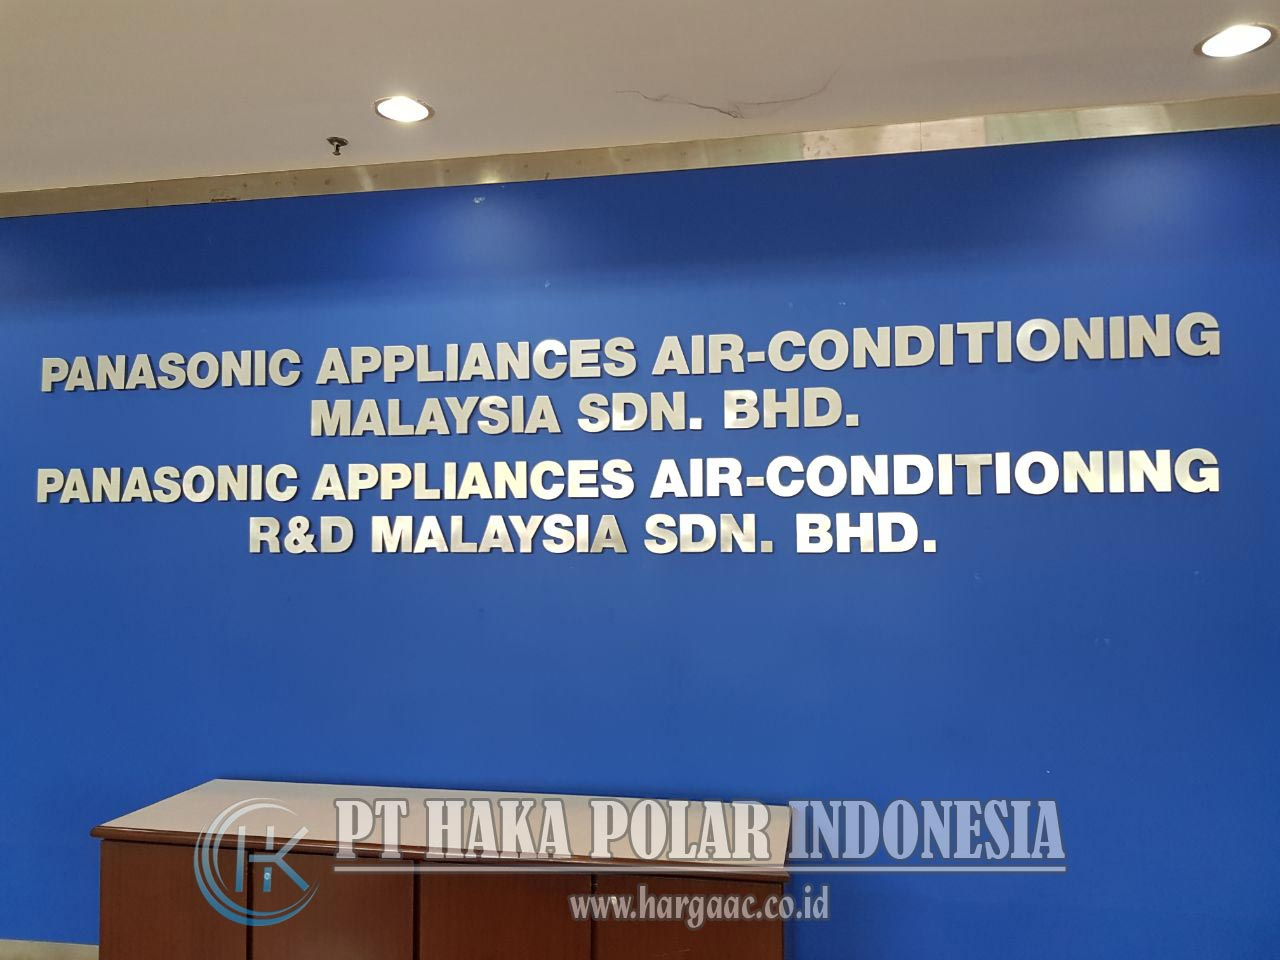 Workshop Inverter Factory Visit Panasonic Air Conditioning AC 2017 di Panasonic Appliances Air Conditioning Malaysia